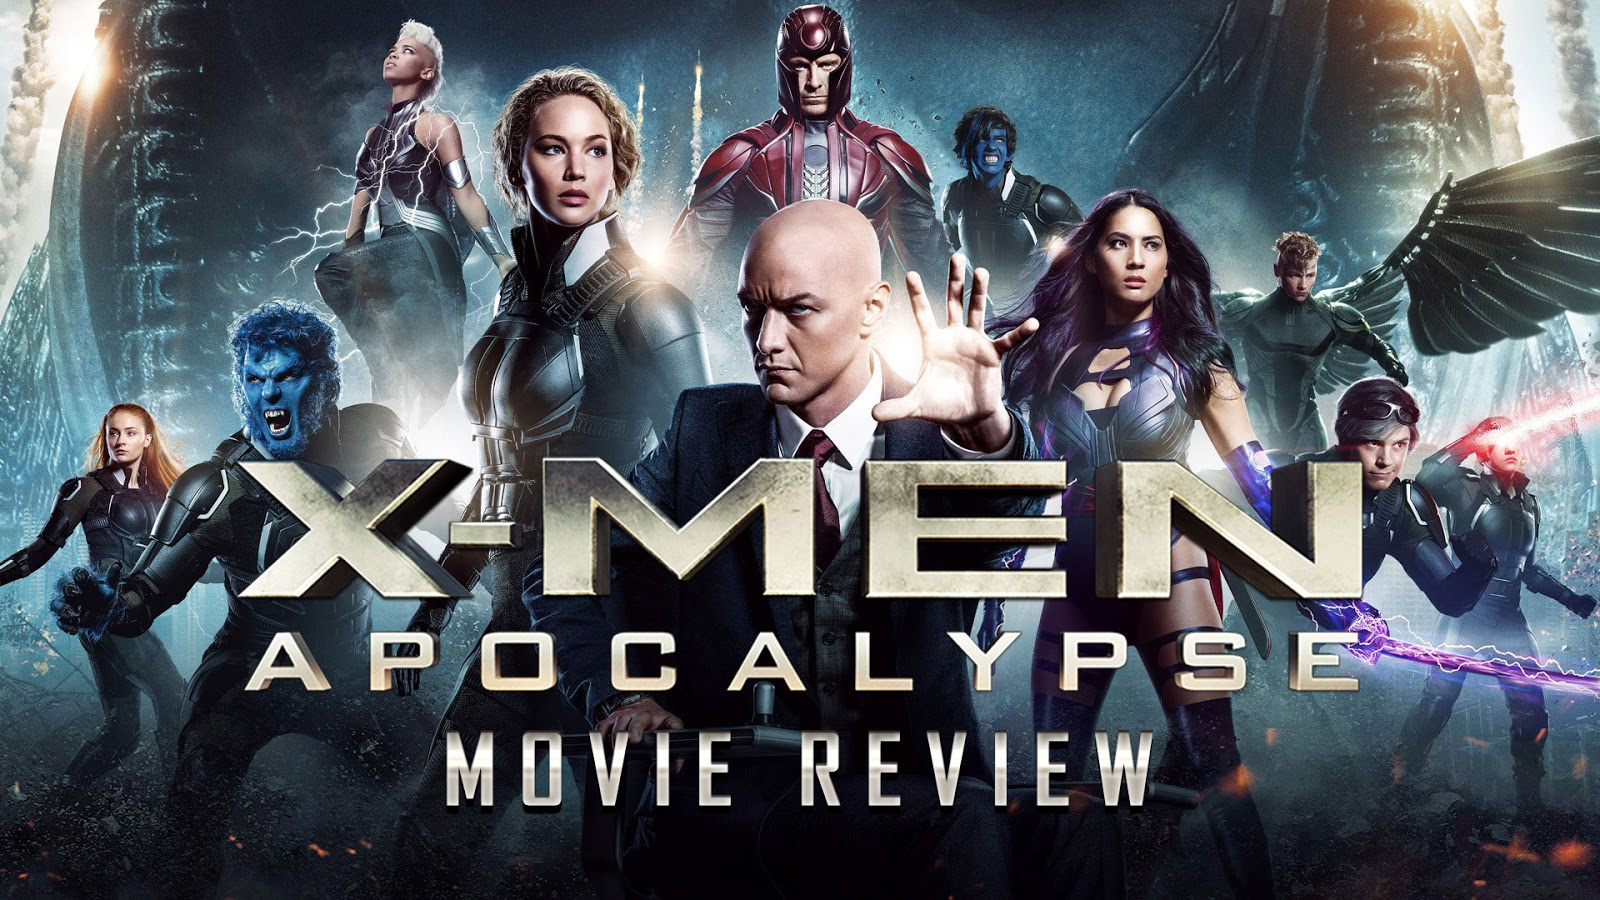 movie review X-Men: Apocalypse podcast